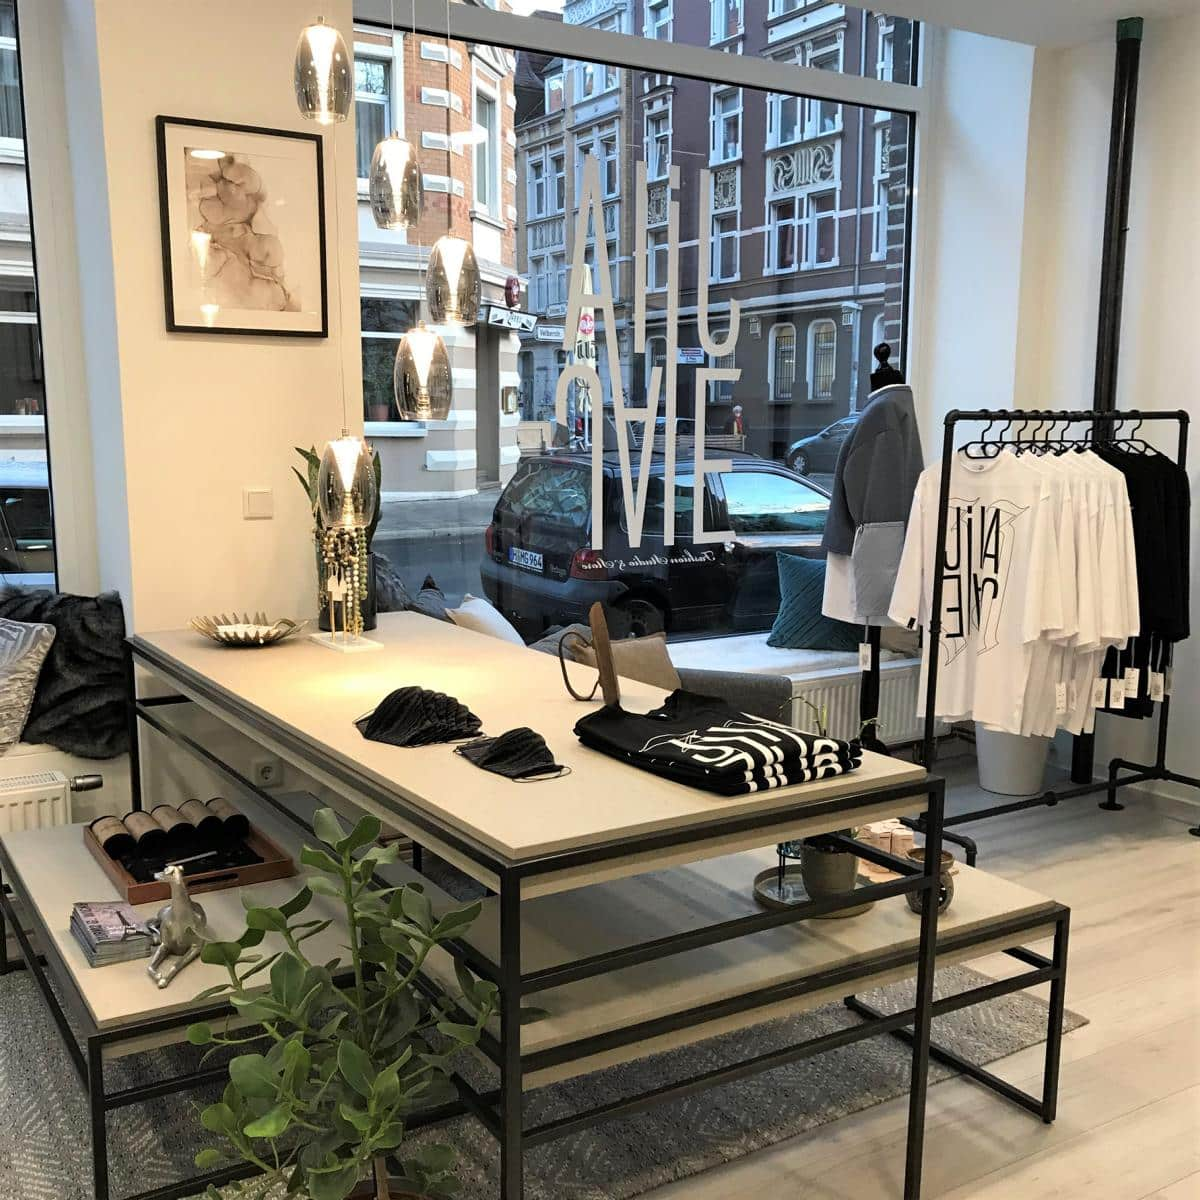 Style Hannover JILAJALE Store - JILAJALE Fashion Studio & Store – Outfits mit Limit in Linden